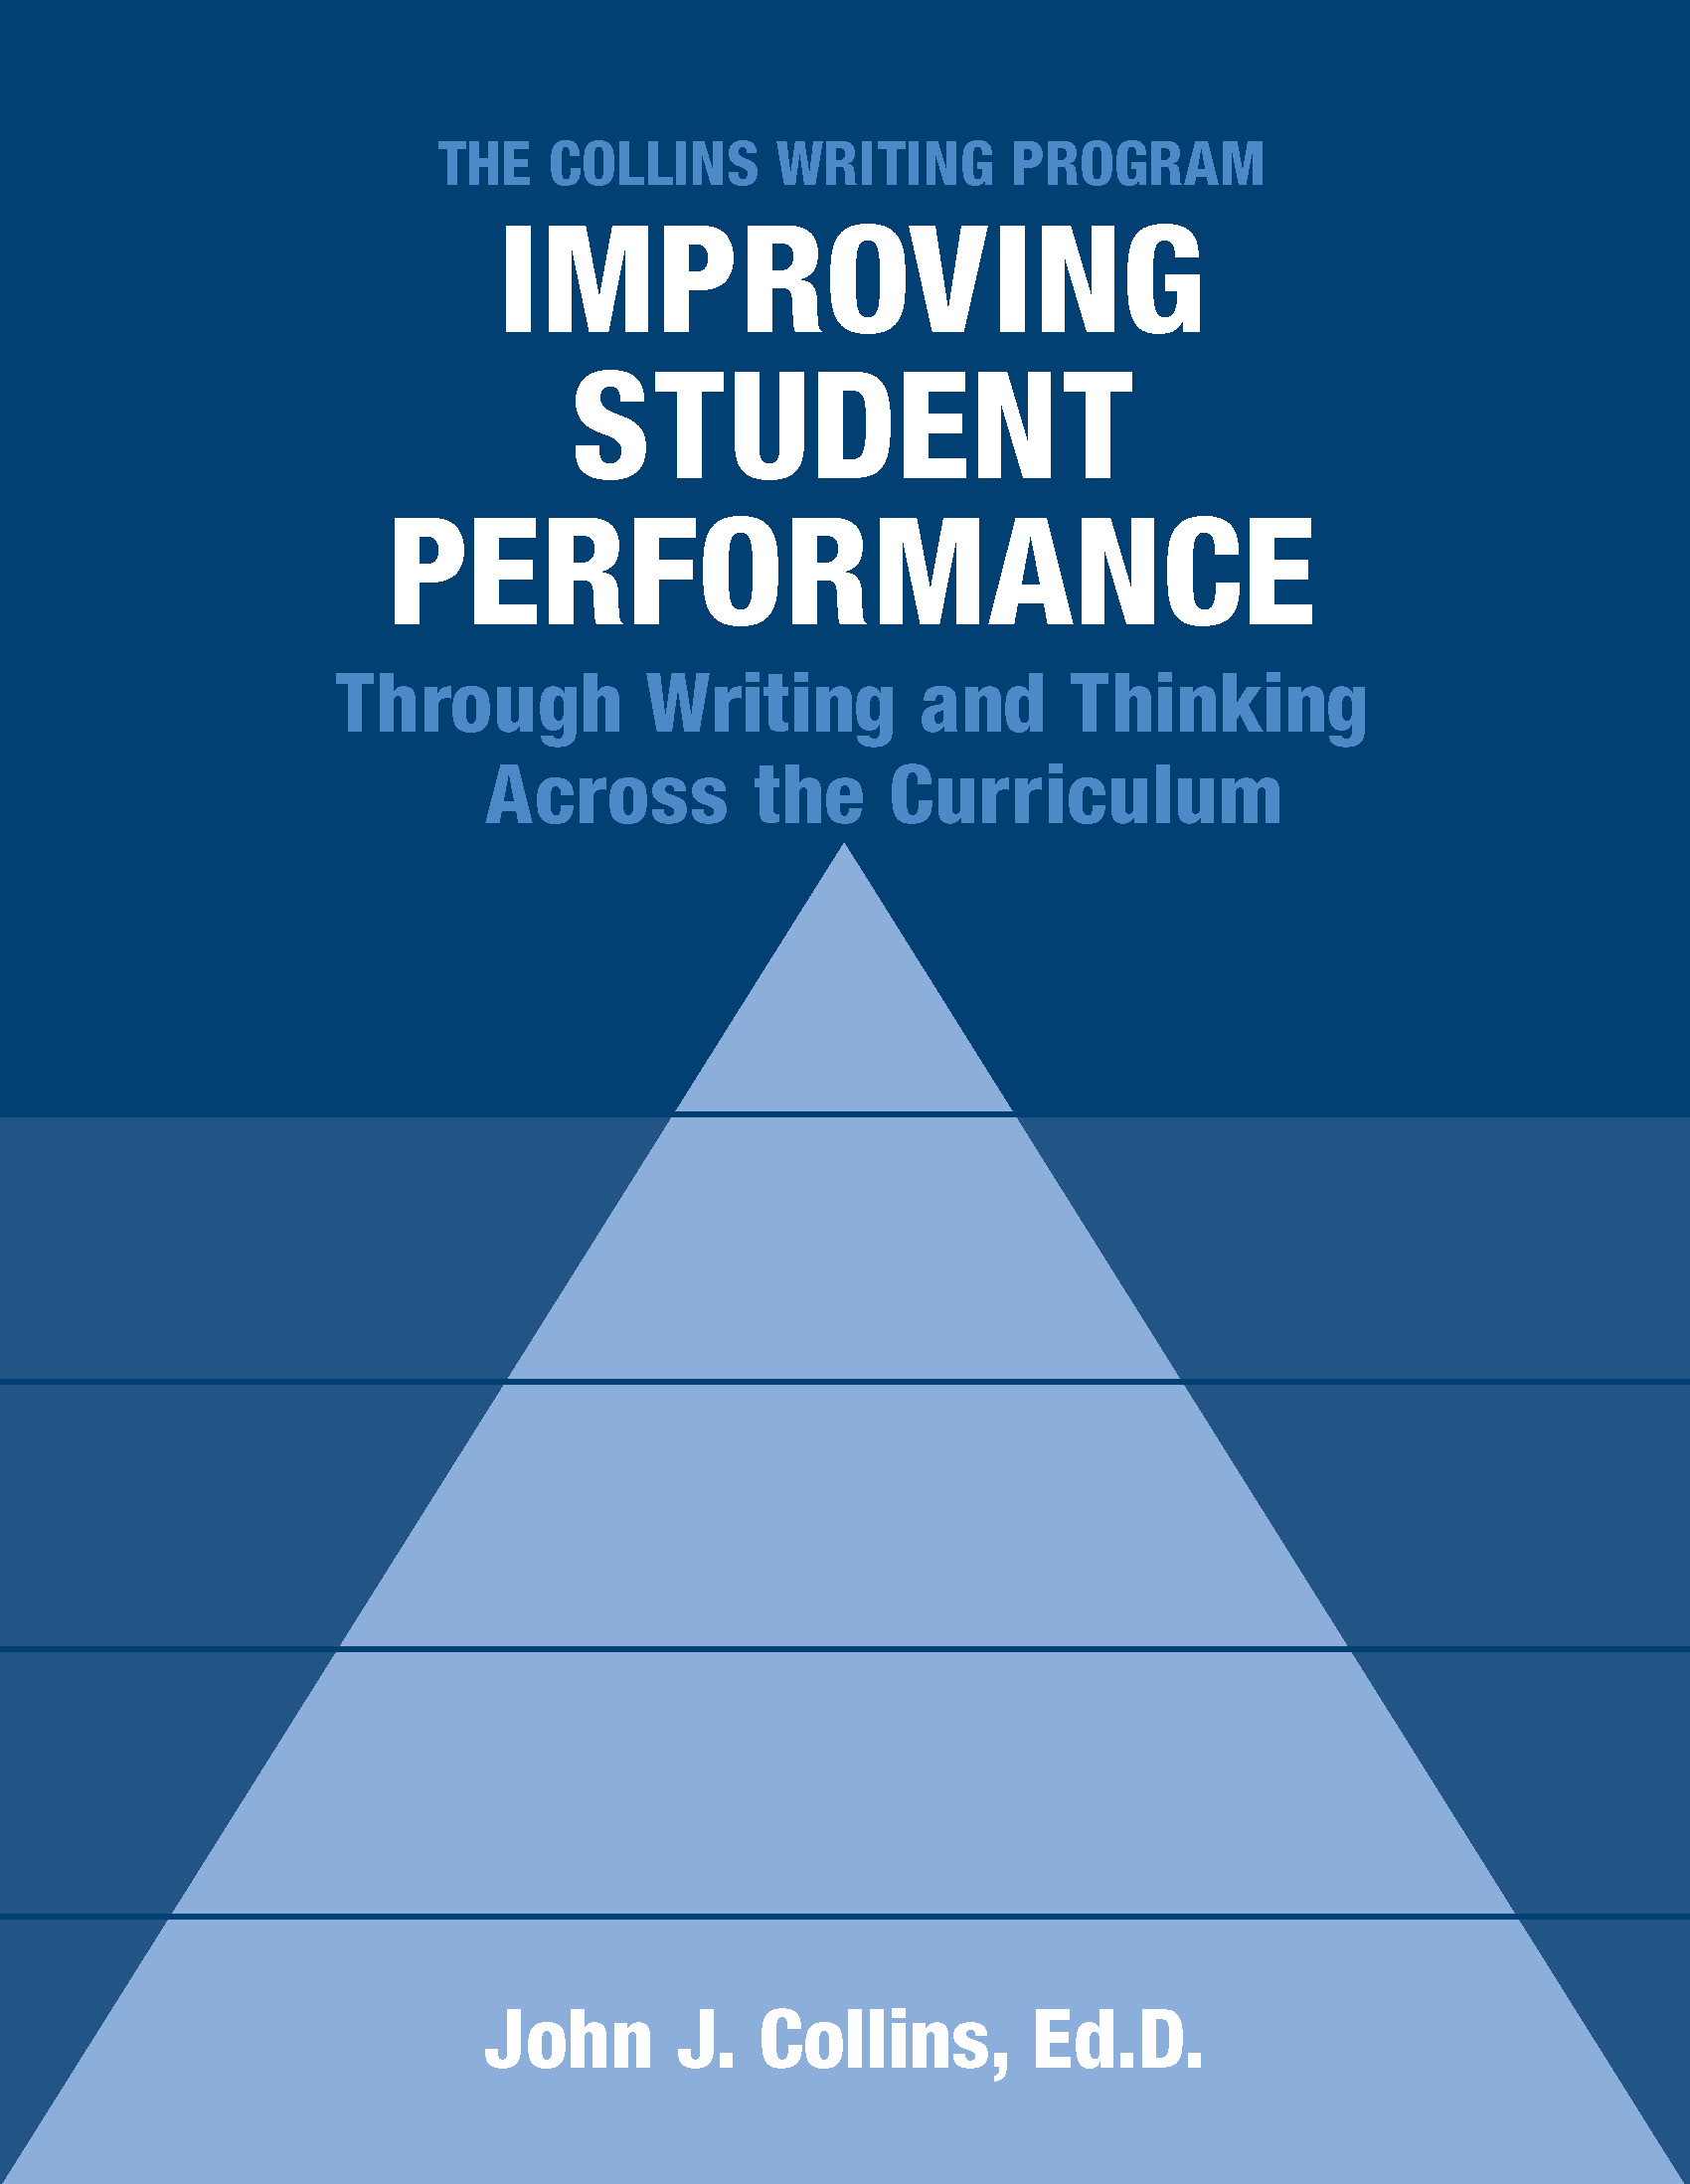 Five Strategies to improve Academic Performance